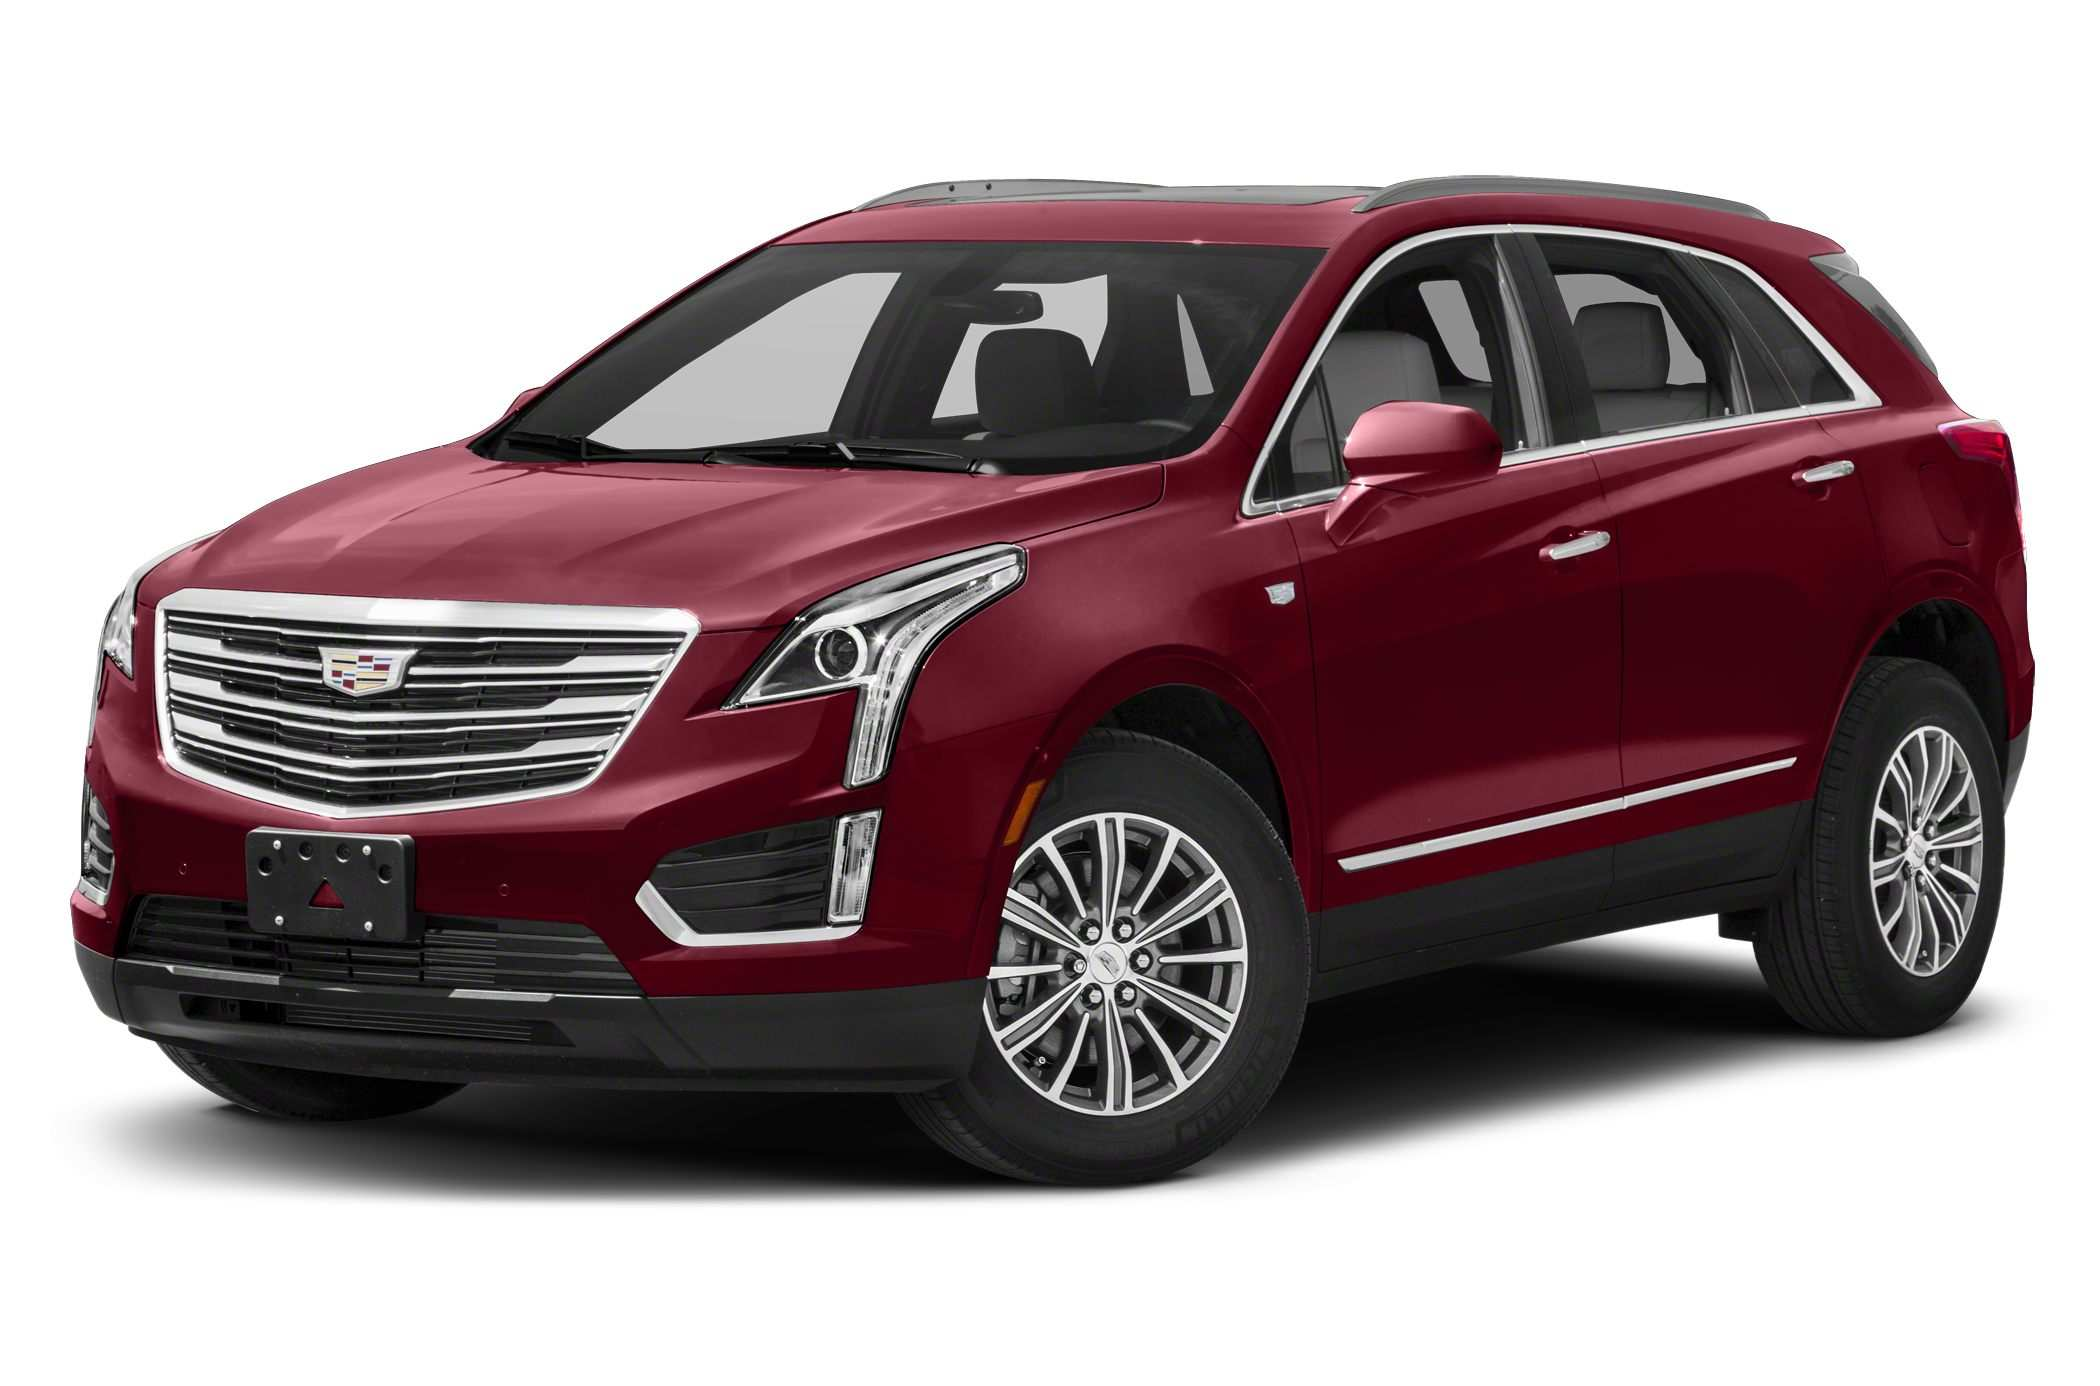 46 New 2019 Spy Shots Cadillac Xt5 Redesign